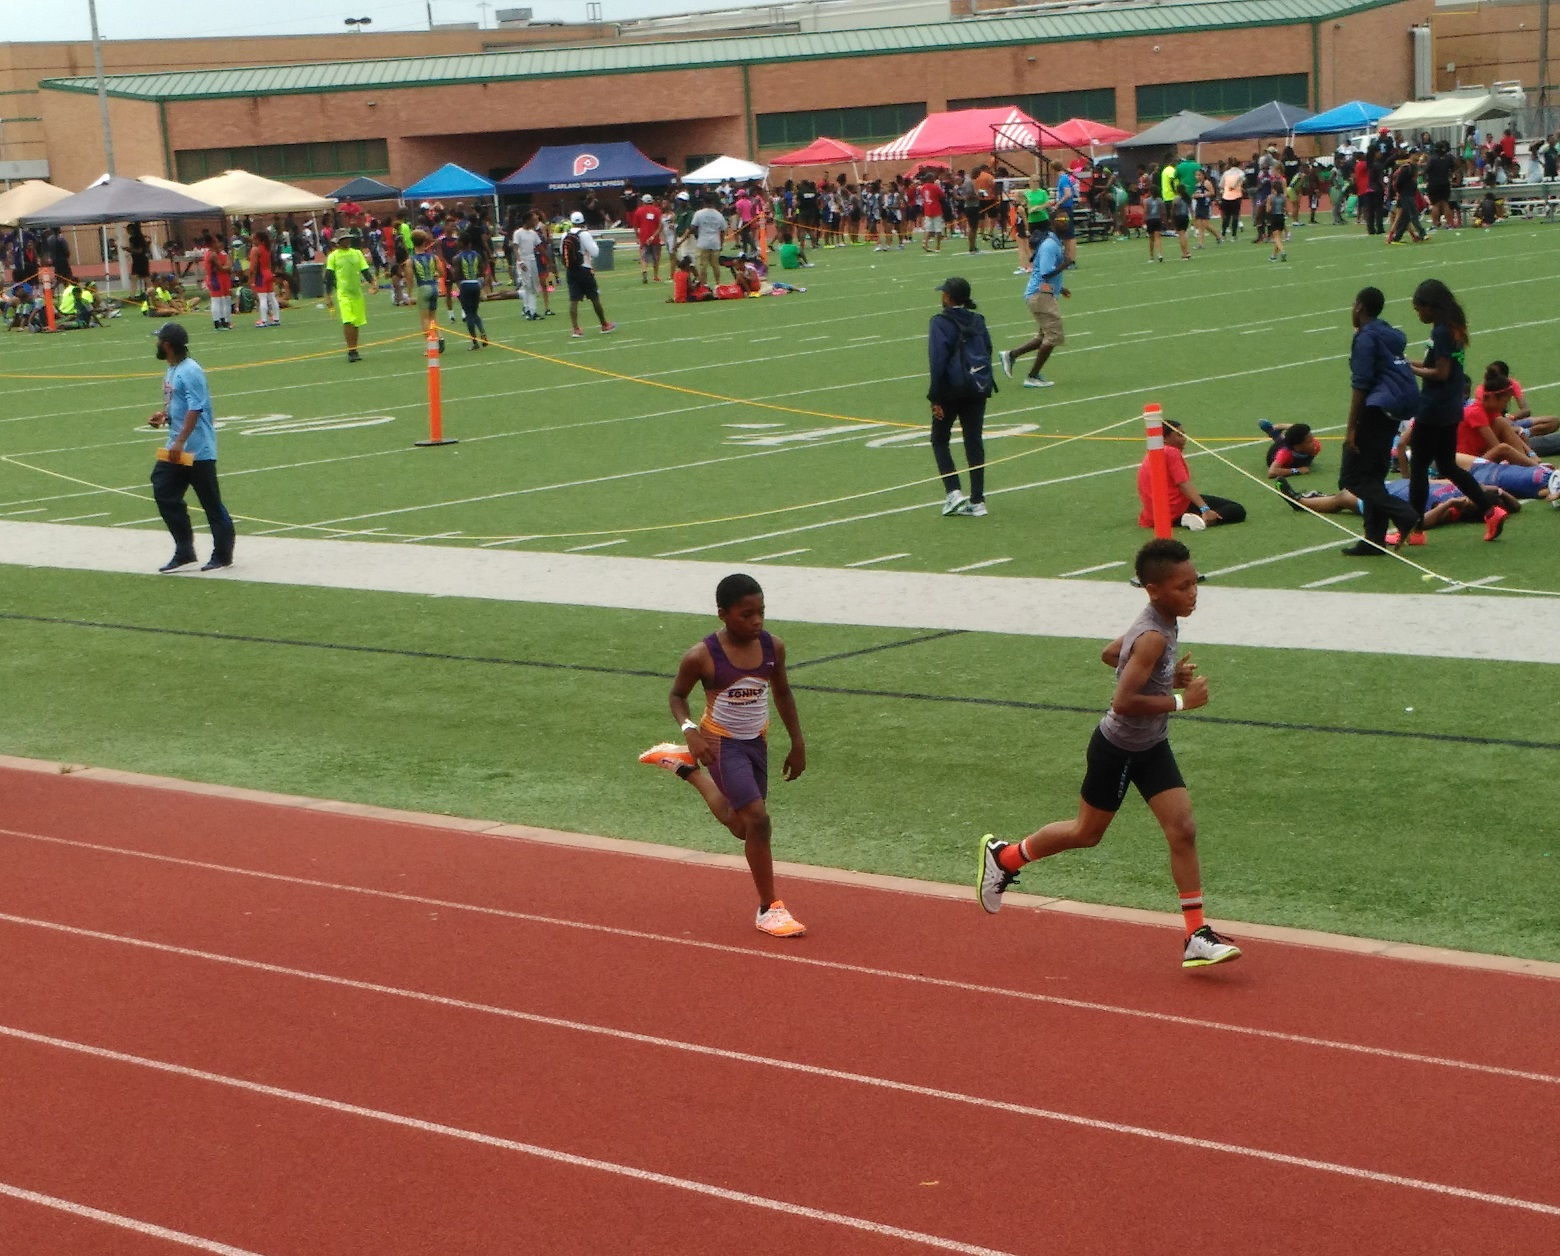 Damario running the 800